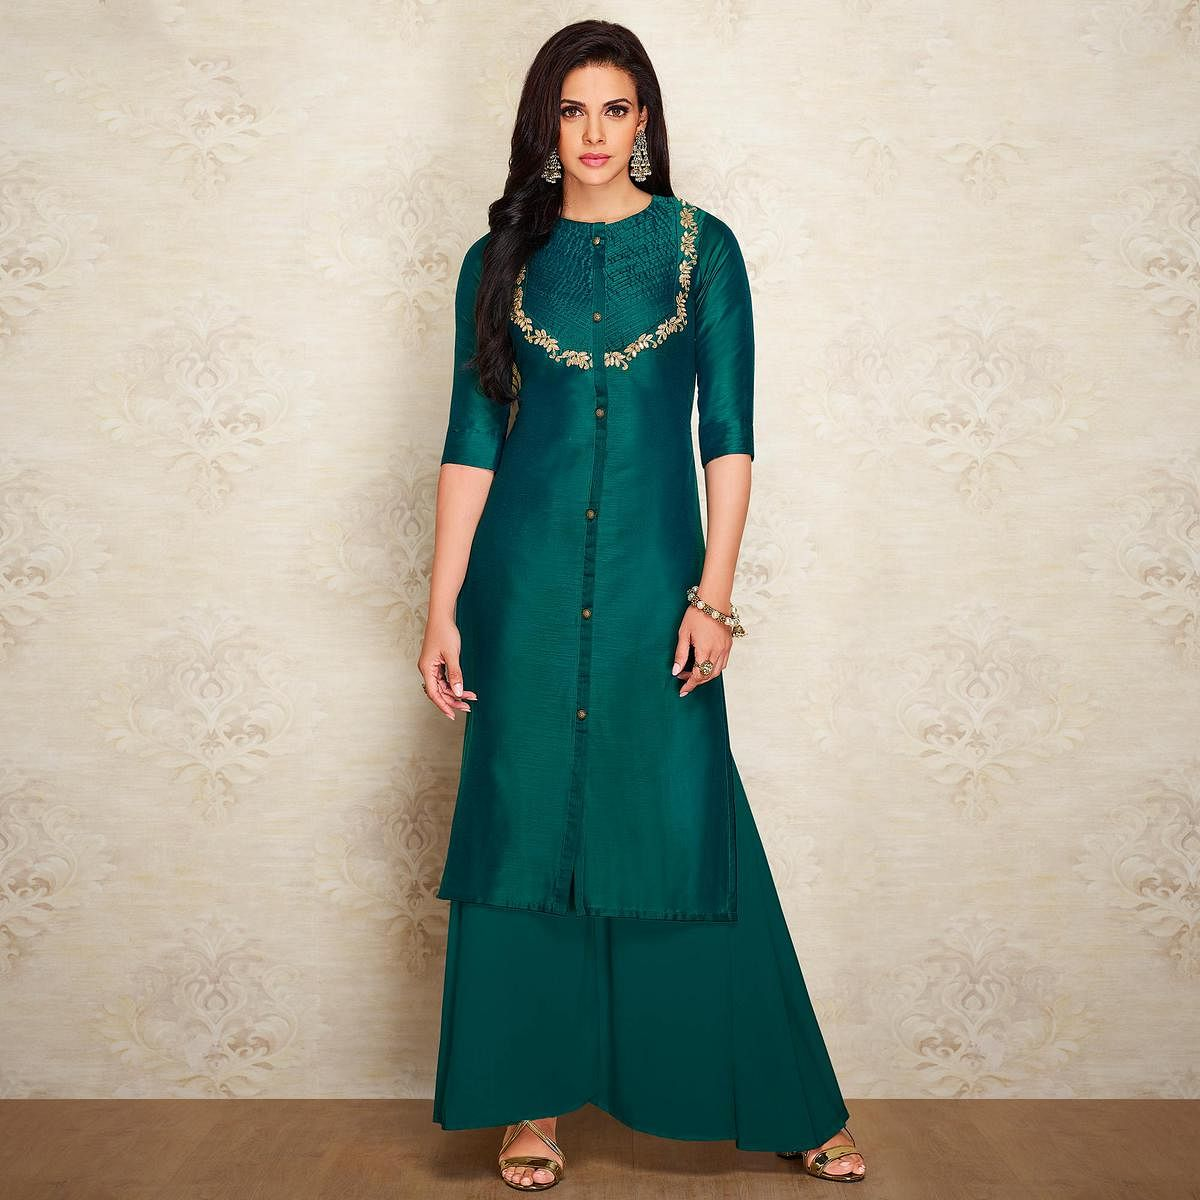 Trendy Teal Green Colored Partywear Embroidered Pure Viscose Silk Palazzo Suit